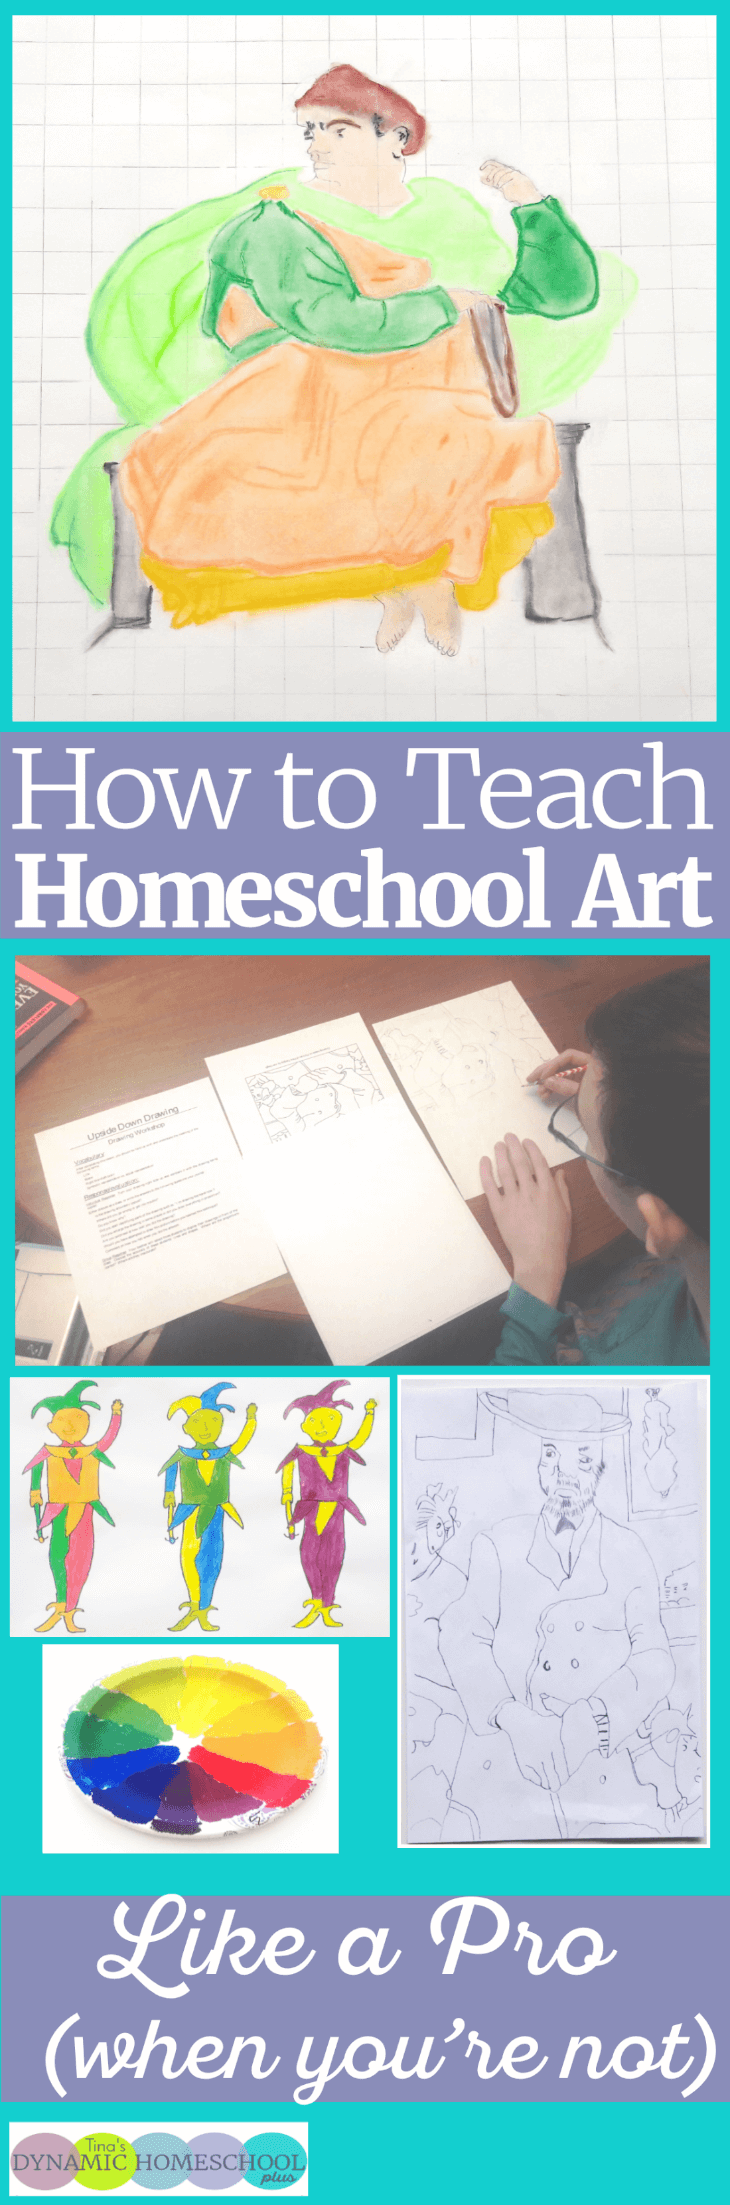 Teaching homeschool art use to be a subject that intimidated me. I didn't give up trying to teach it because I feel so much emphasis is always give on academics and not enough time to power up a child's creativity. Look at easy it can be to teach homeschool art. Click here to read the tips!